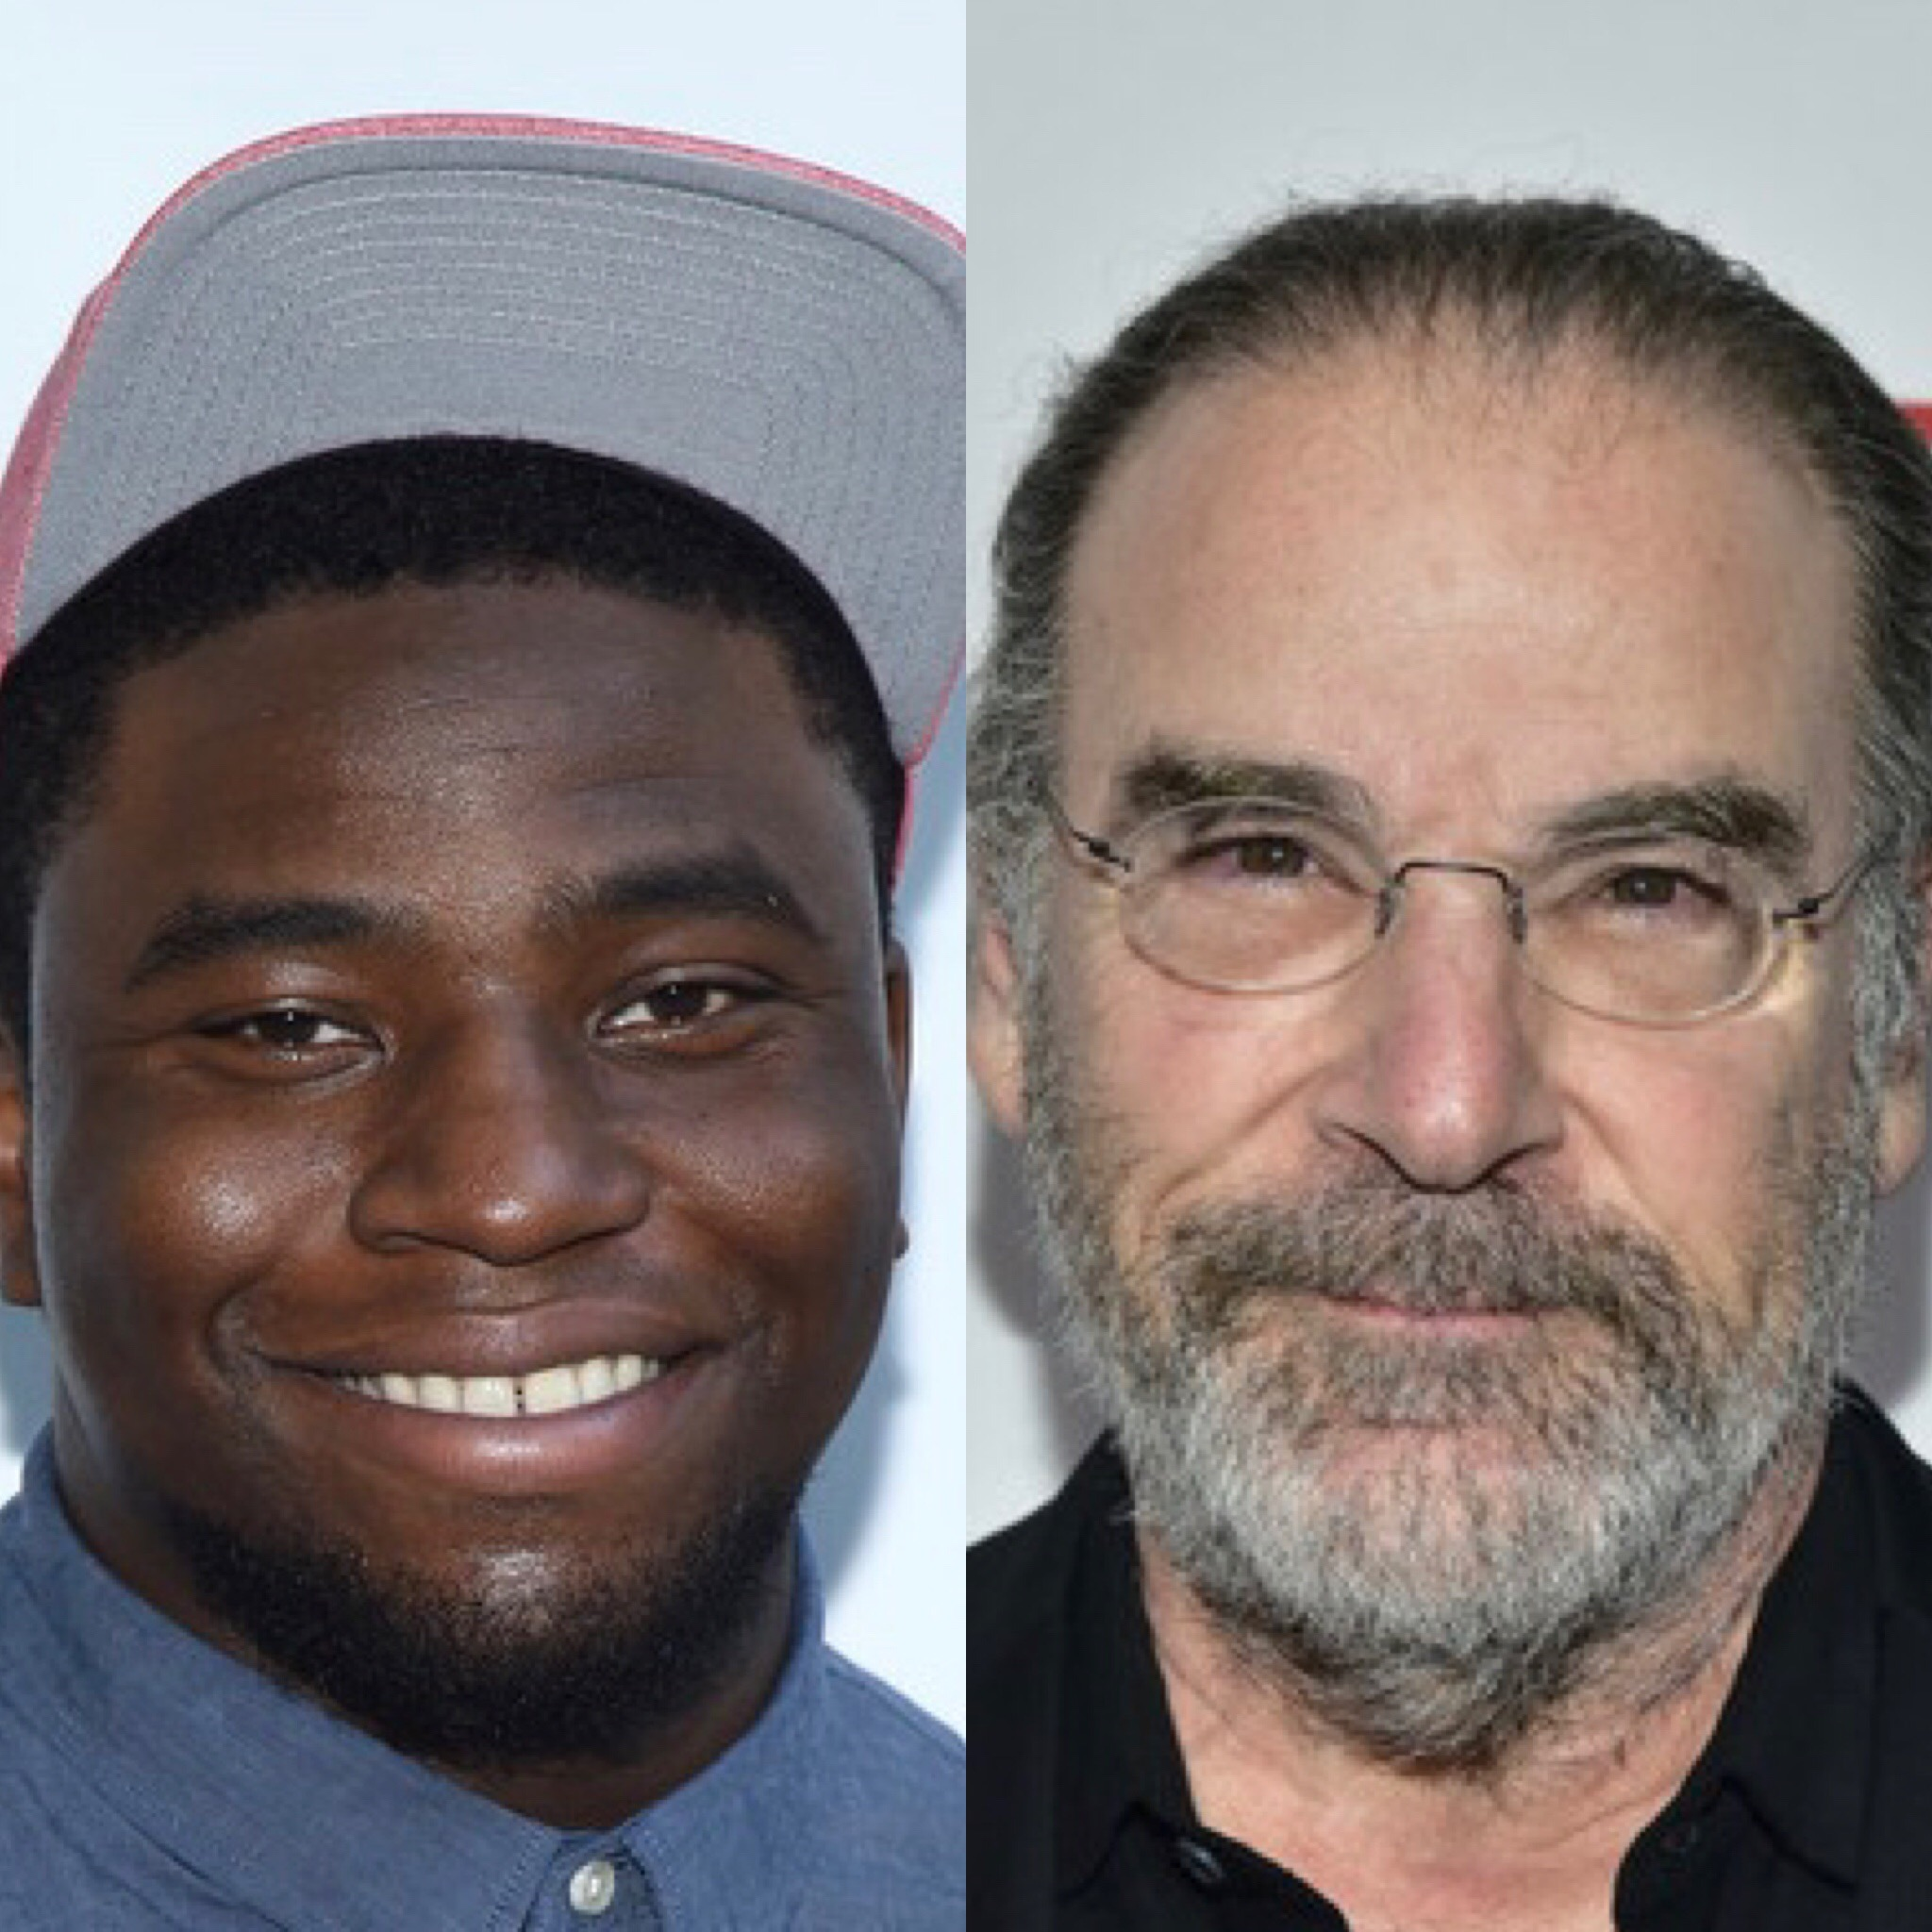 Okieriete Onaodowan (L) and Mandy Patinkin (Getty Images)